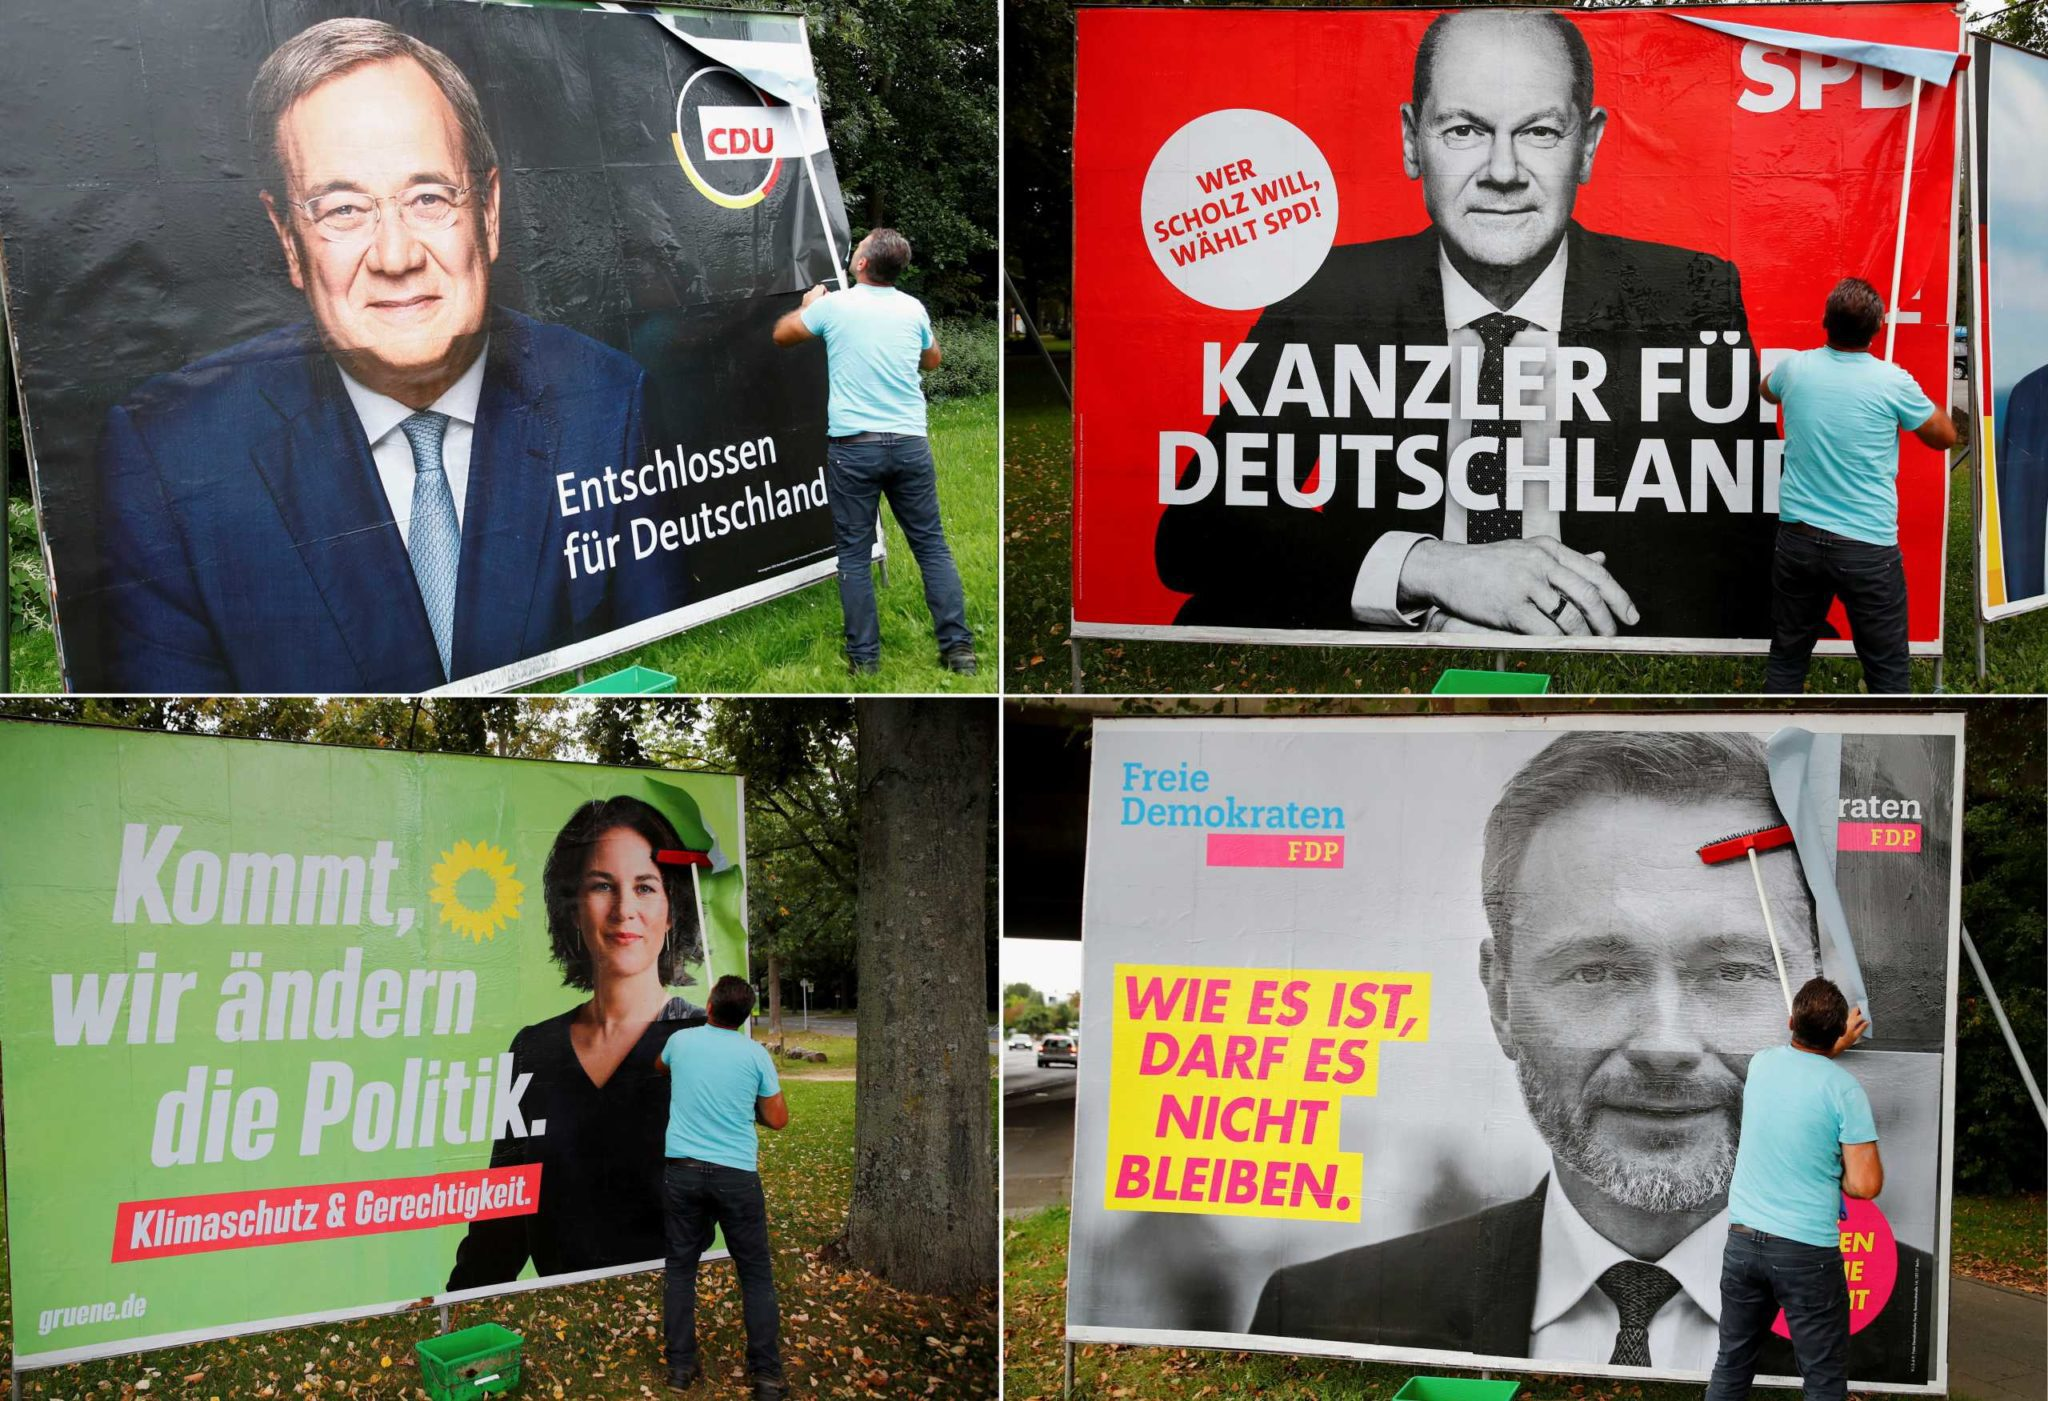 Germany elections scaled